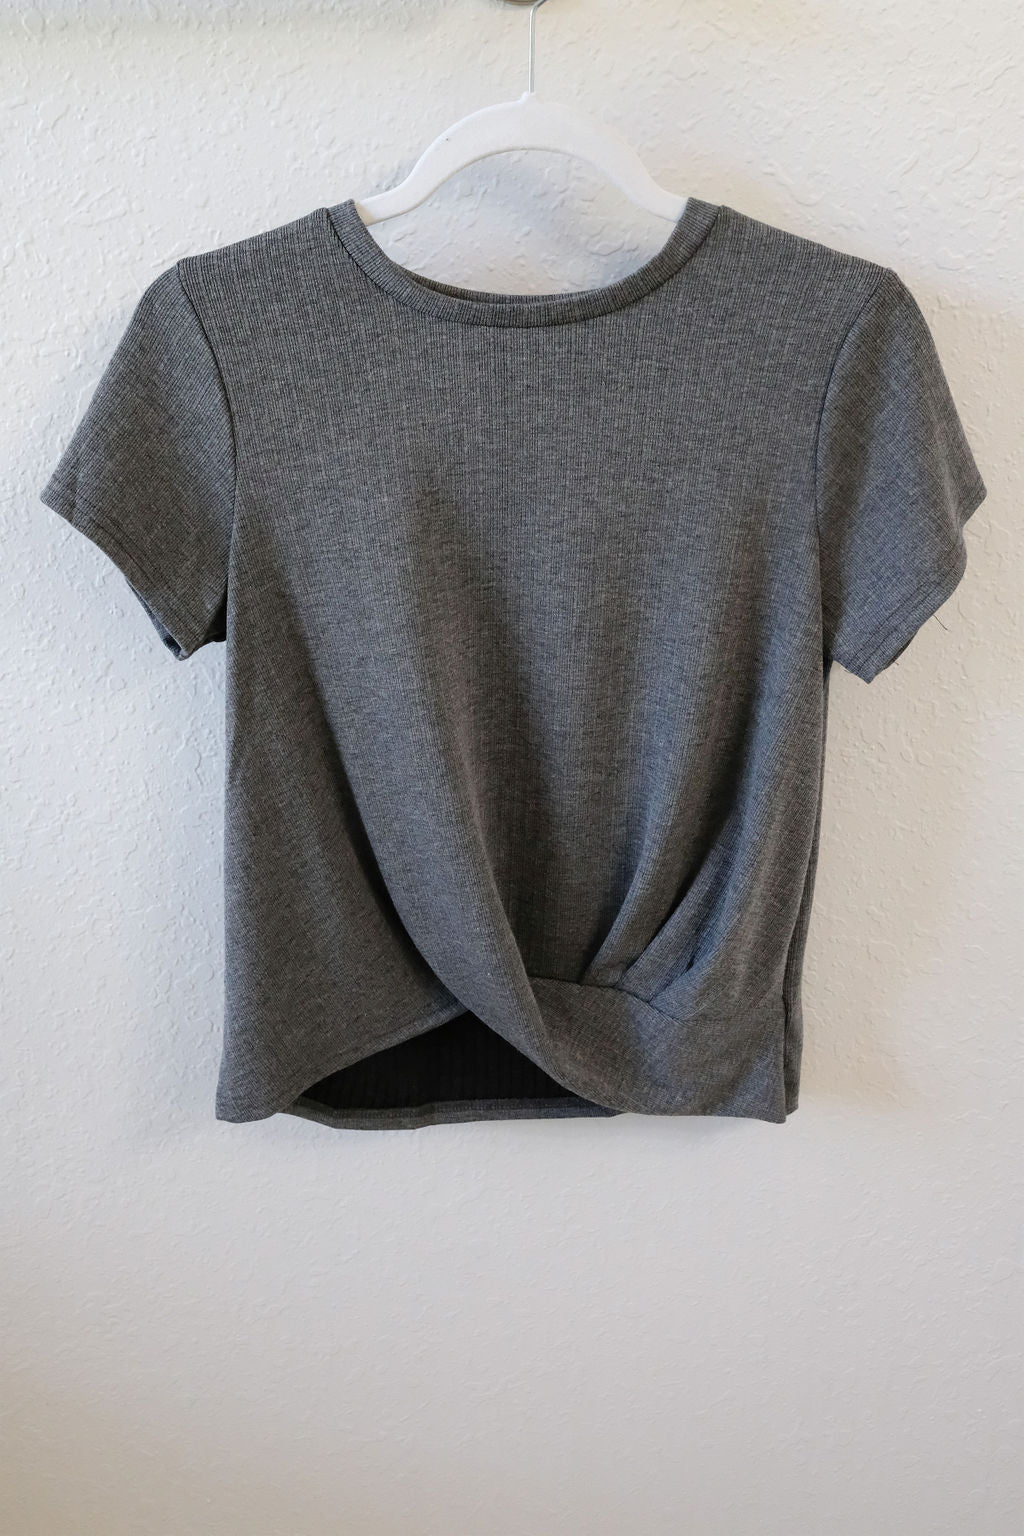 GREY RIBBED SHORT SLEEVE TOP - Erin Edit Shop